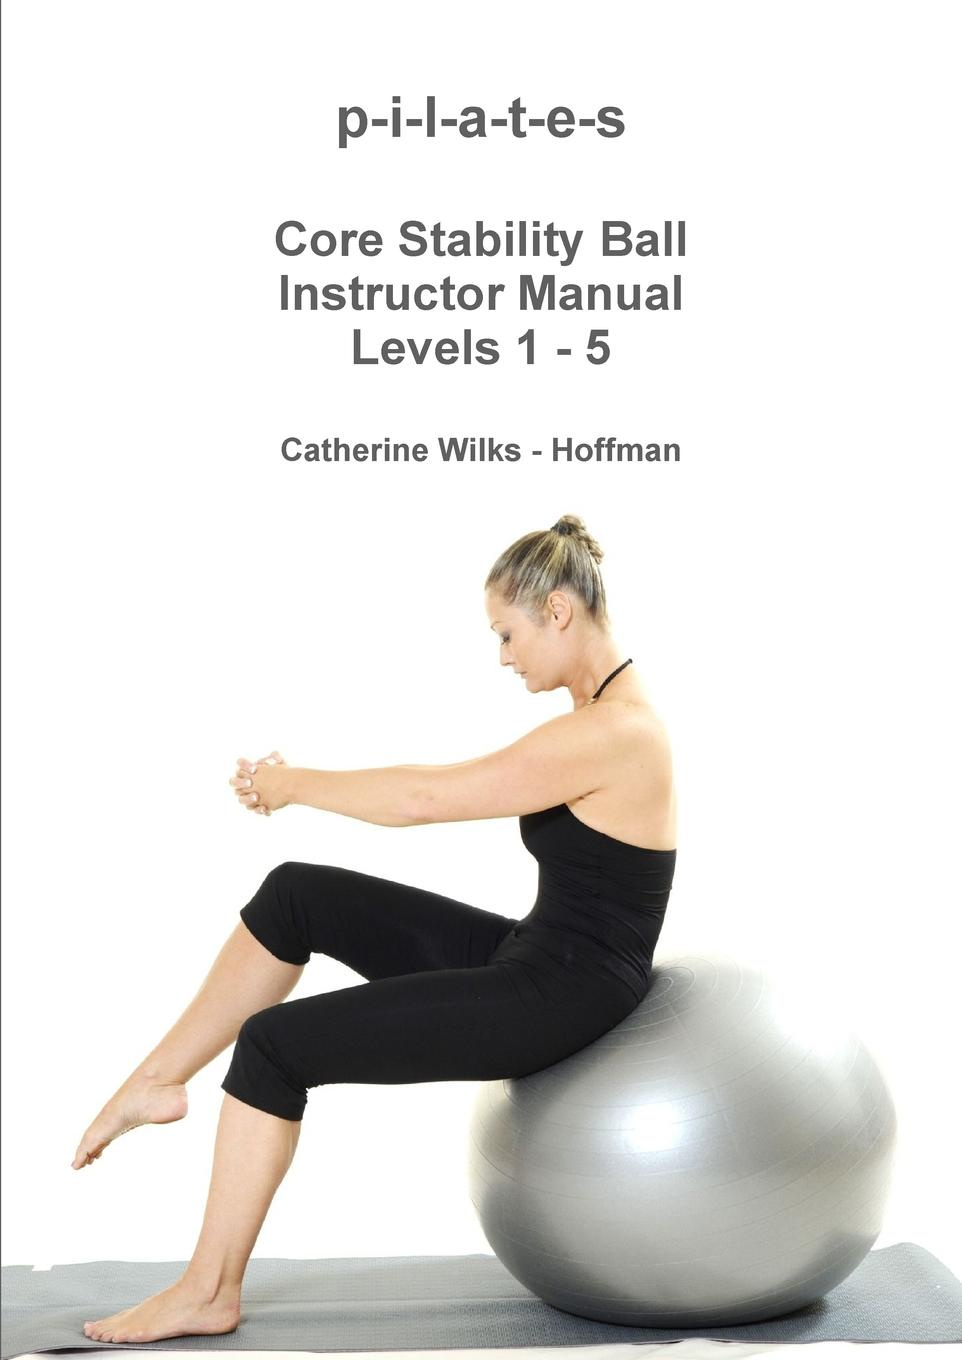 Catherine Wilks - Hoffman p-i-l-a-t-e-s Core Stability Ball Instructor Manual Levels 1 5